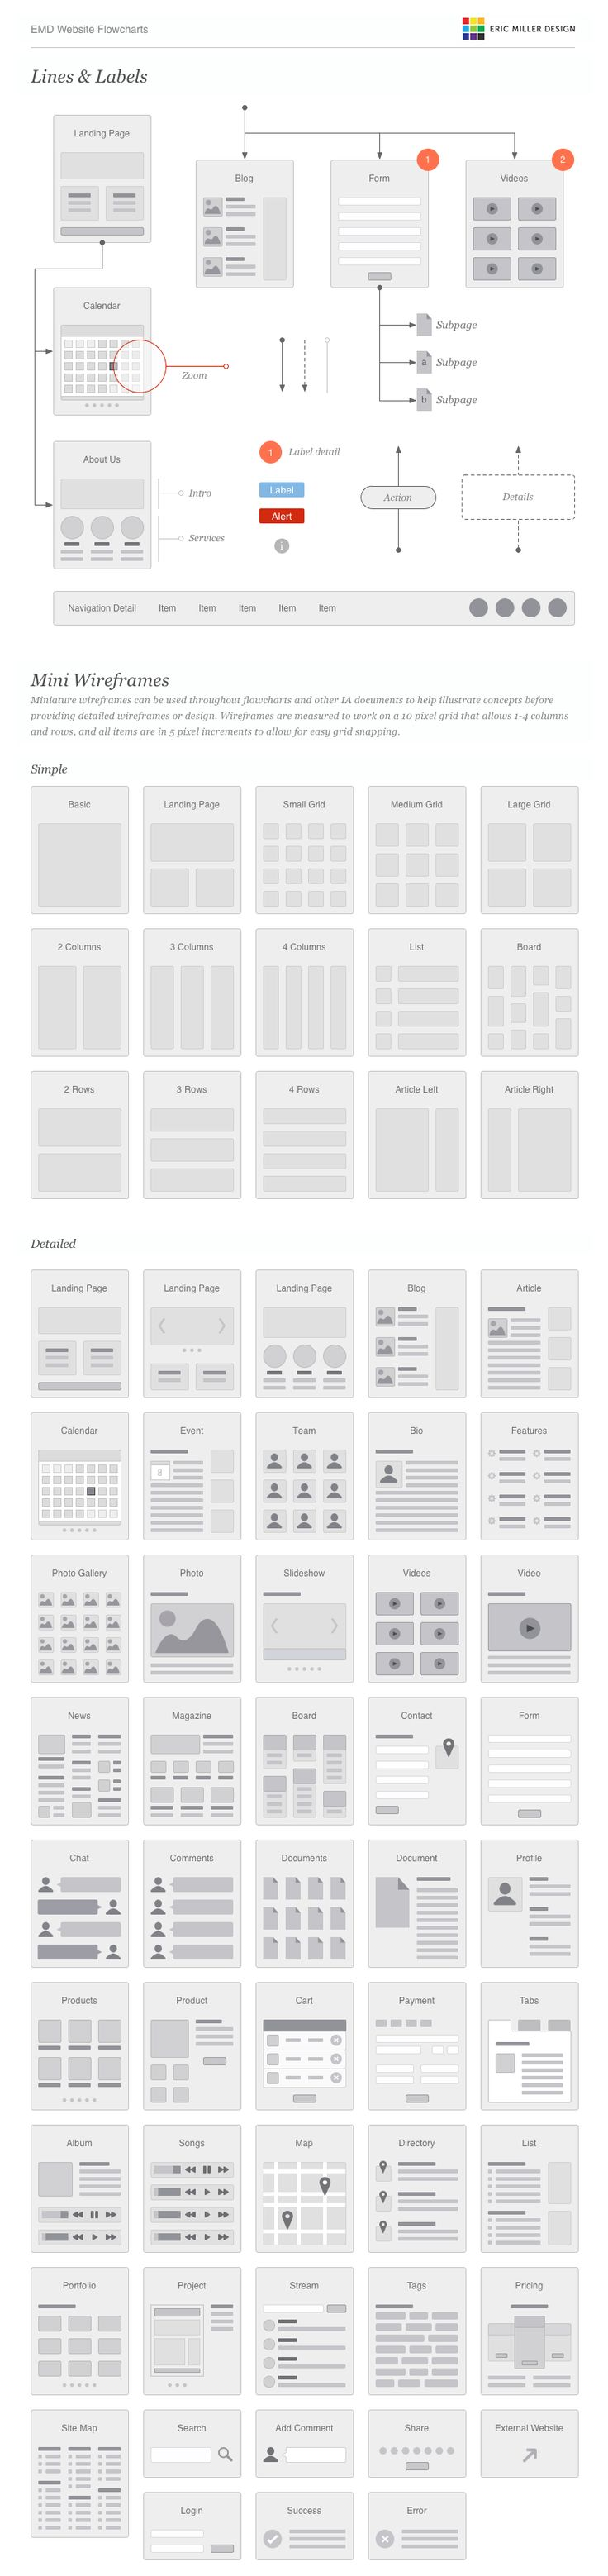 Preview for Website Flowcharts. If you're a user experience professional, listen to The UX Blog Podcast on iTunes.